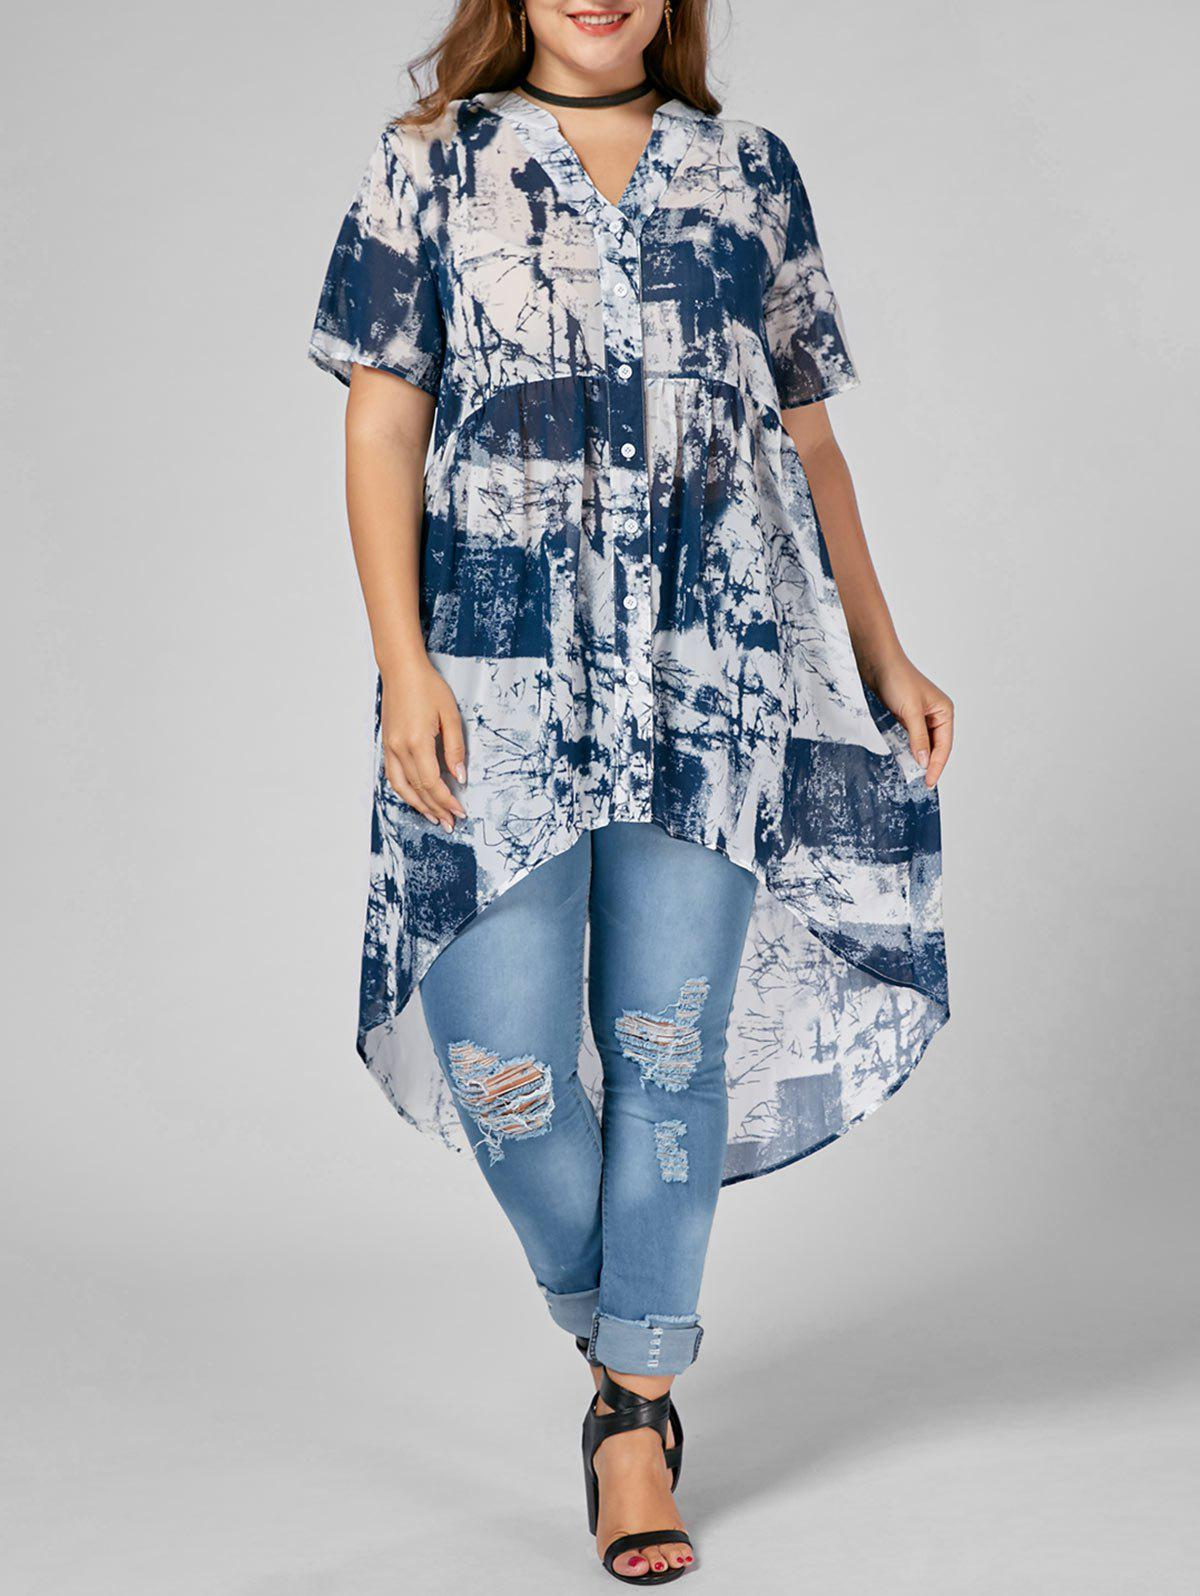 Shops Printed Chiffon High Low Plus Size Top